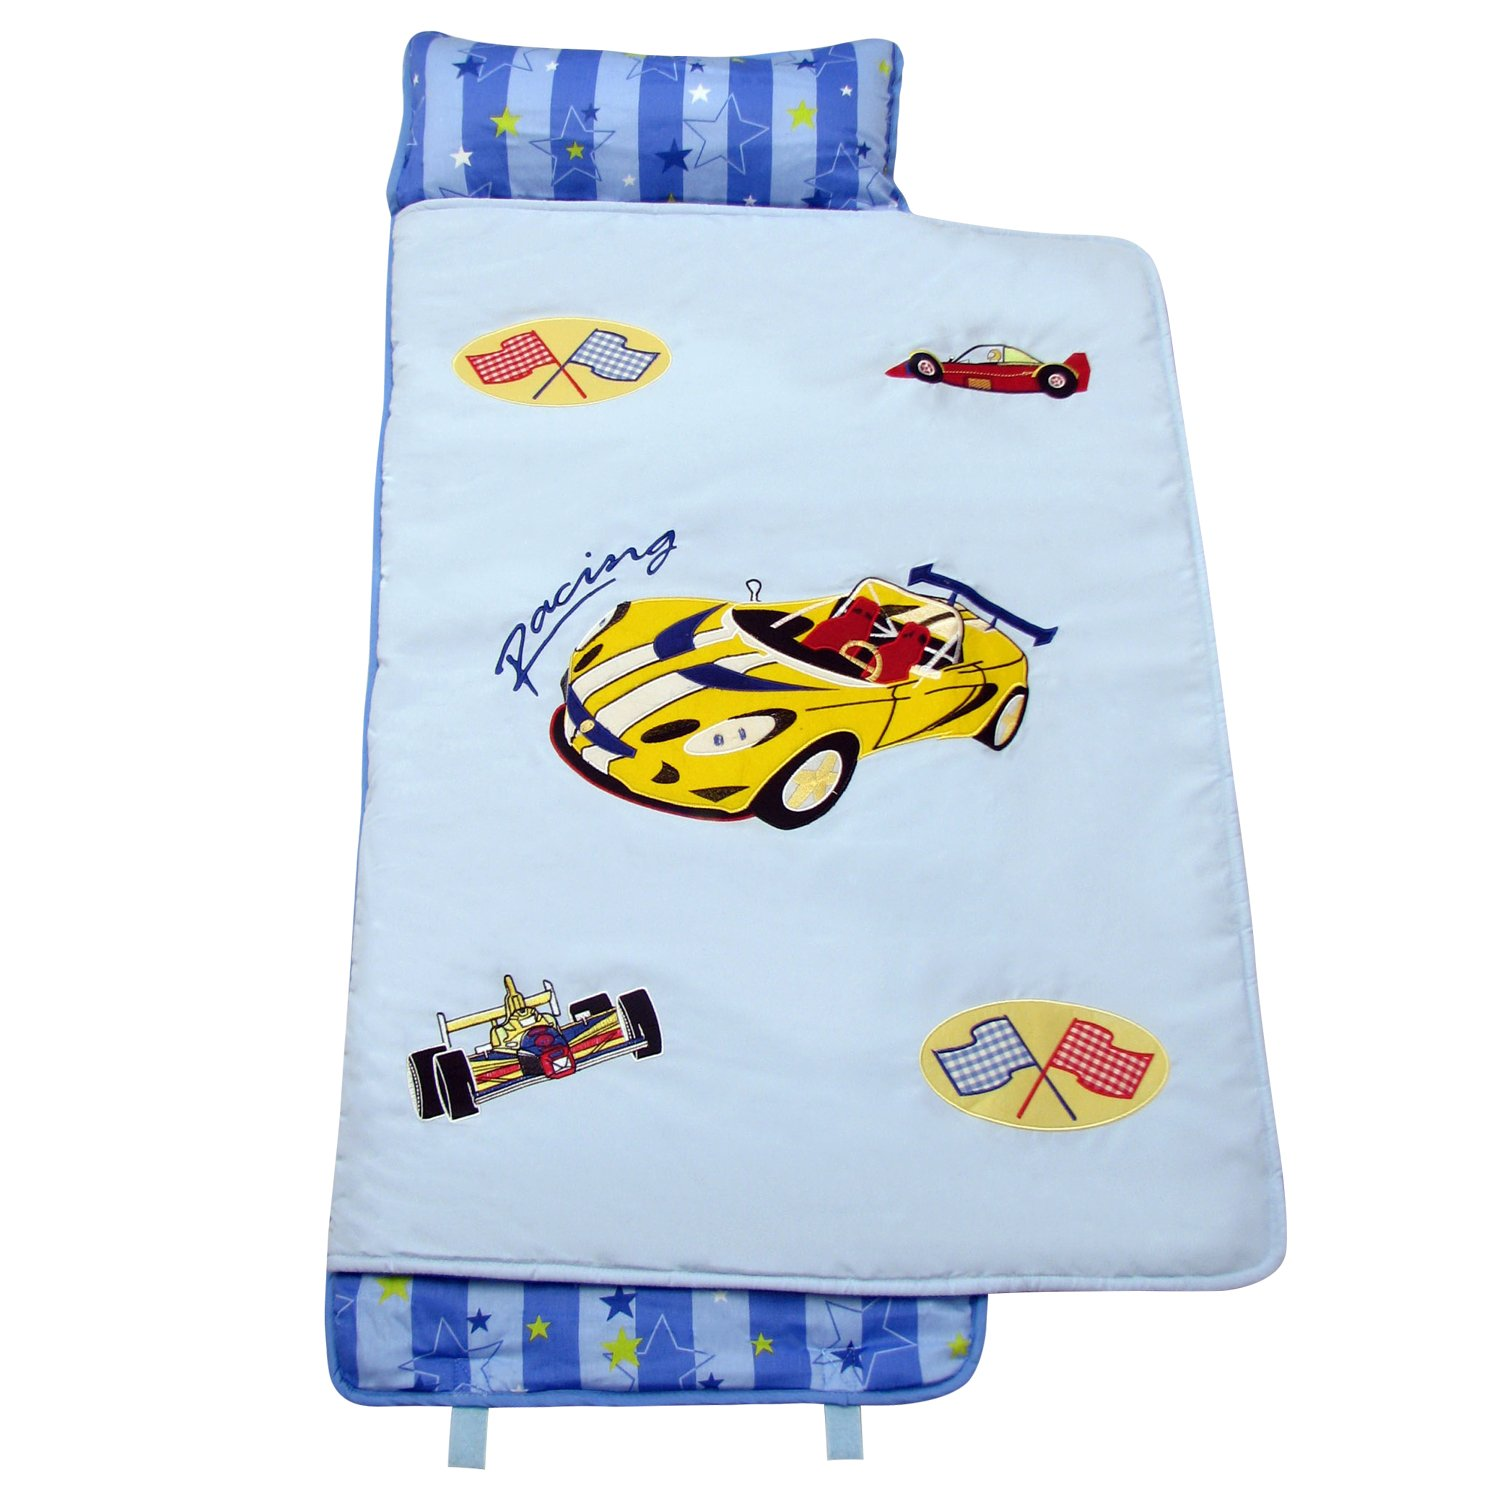 SoHo Zoom Race Car nap mat for toddler preschool day care with pillow lightweight rolled nap mats